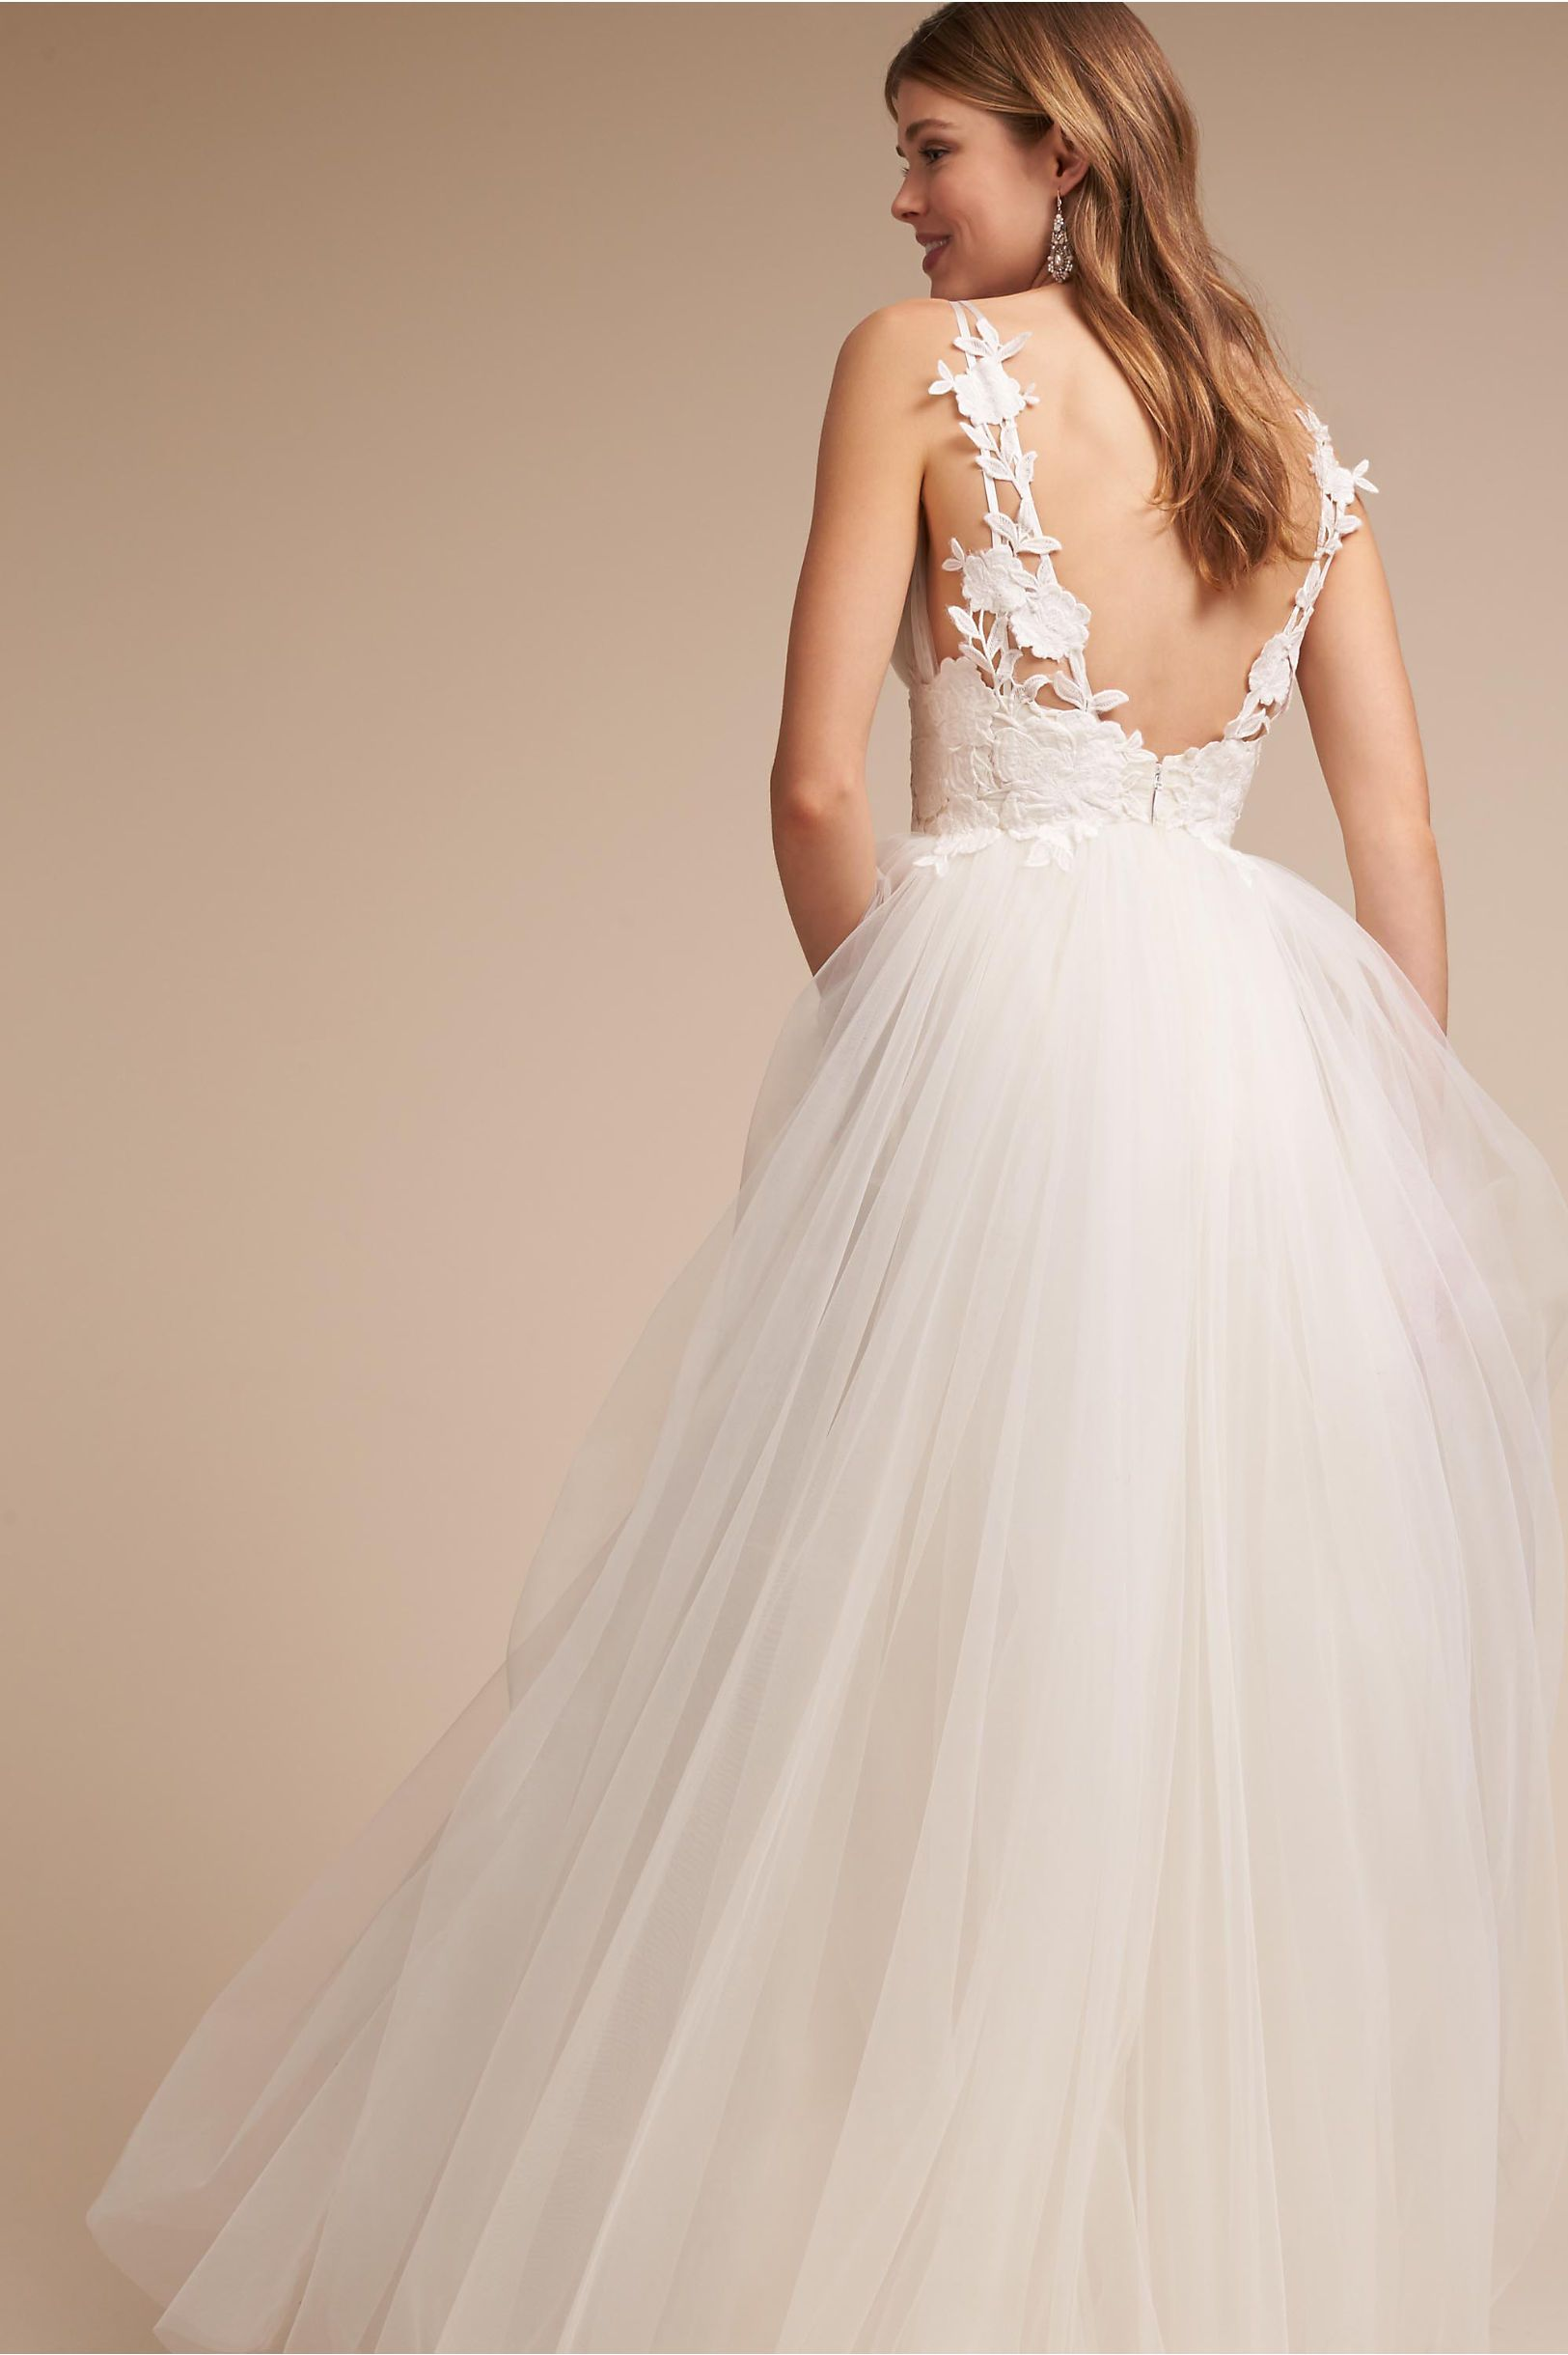 deccbf6e543 BHLDN s Catherine Deane Melrose Gown in Ivory